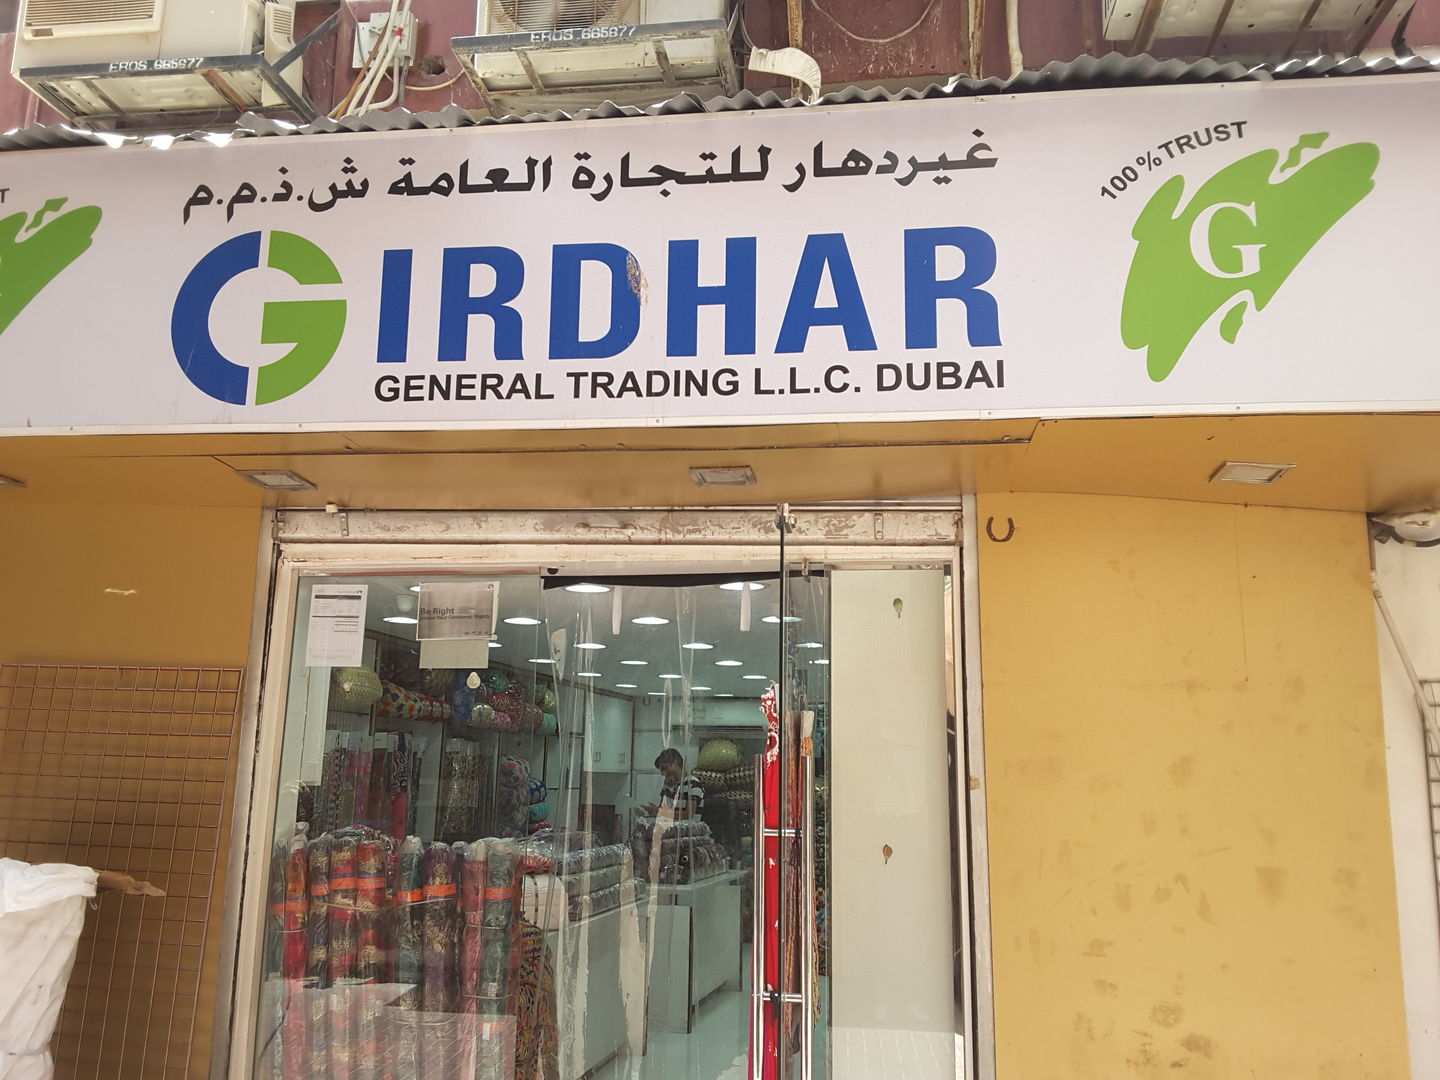 HiDubai-business-girdhar-general-trading-b2b-services-distributors-wholesalers-meena-bazar-al-souq-al-kabeer-dubai-2